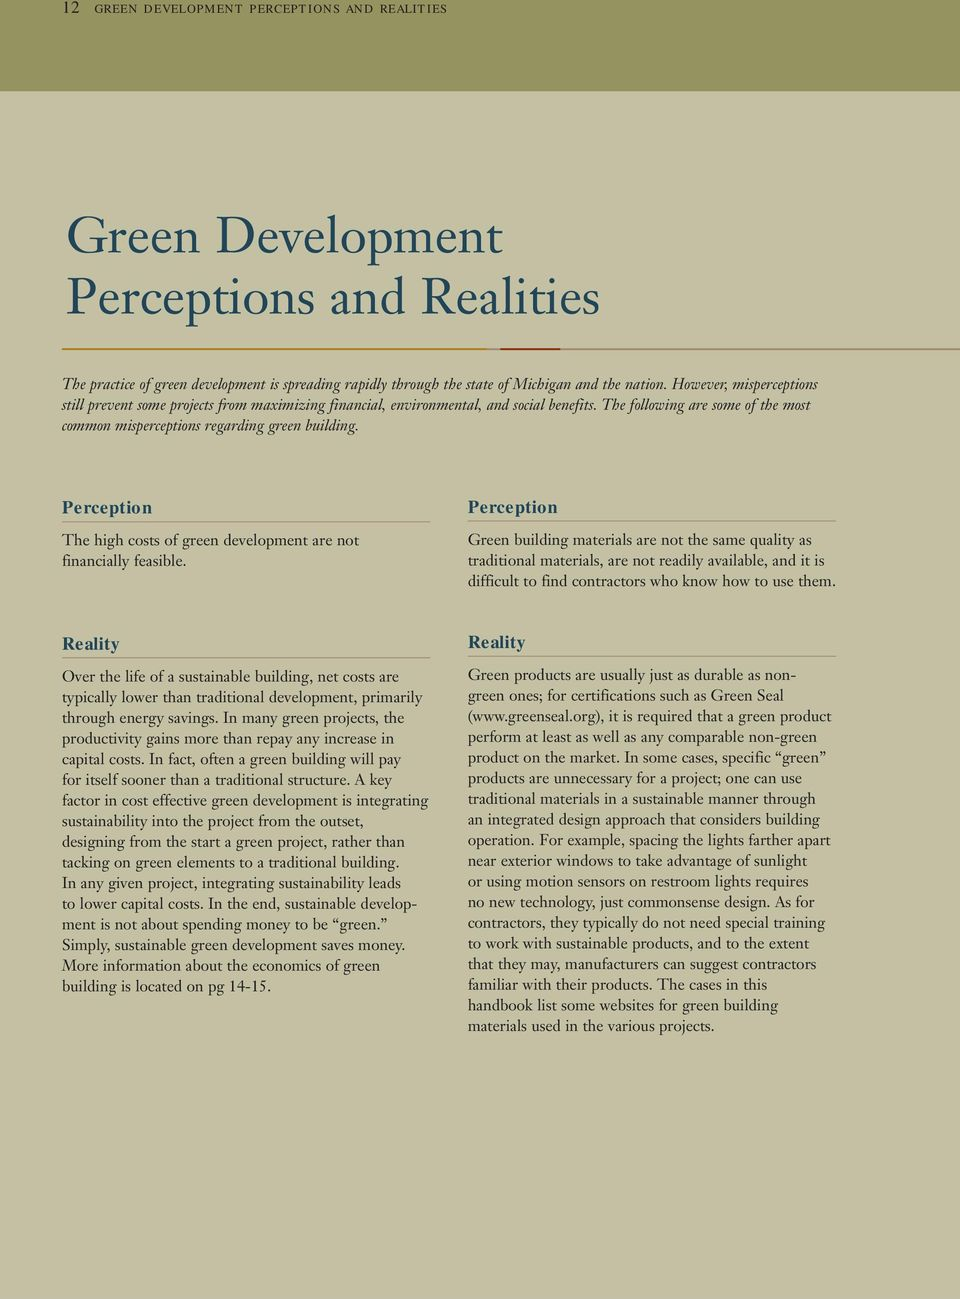 Perception The high costs of green development are not financially feasible.